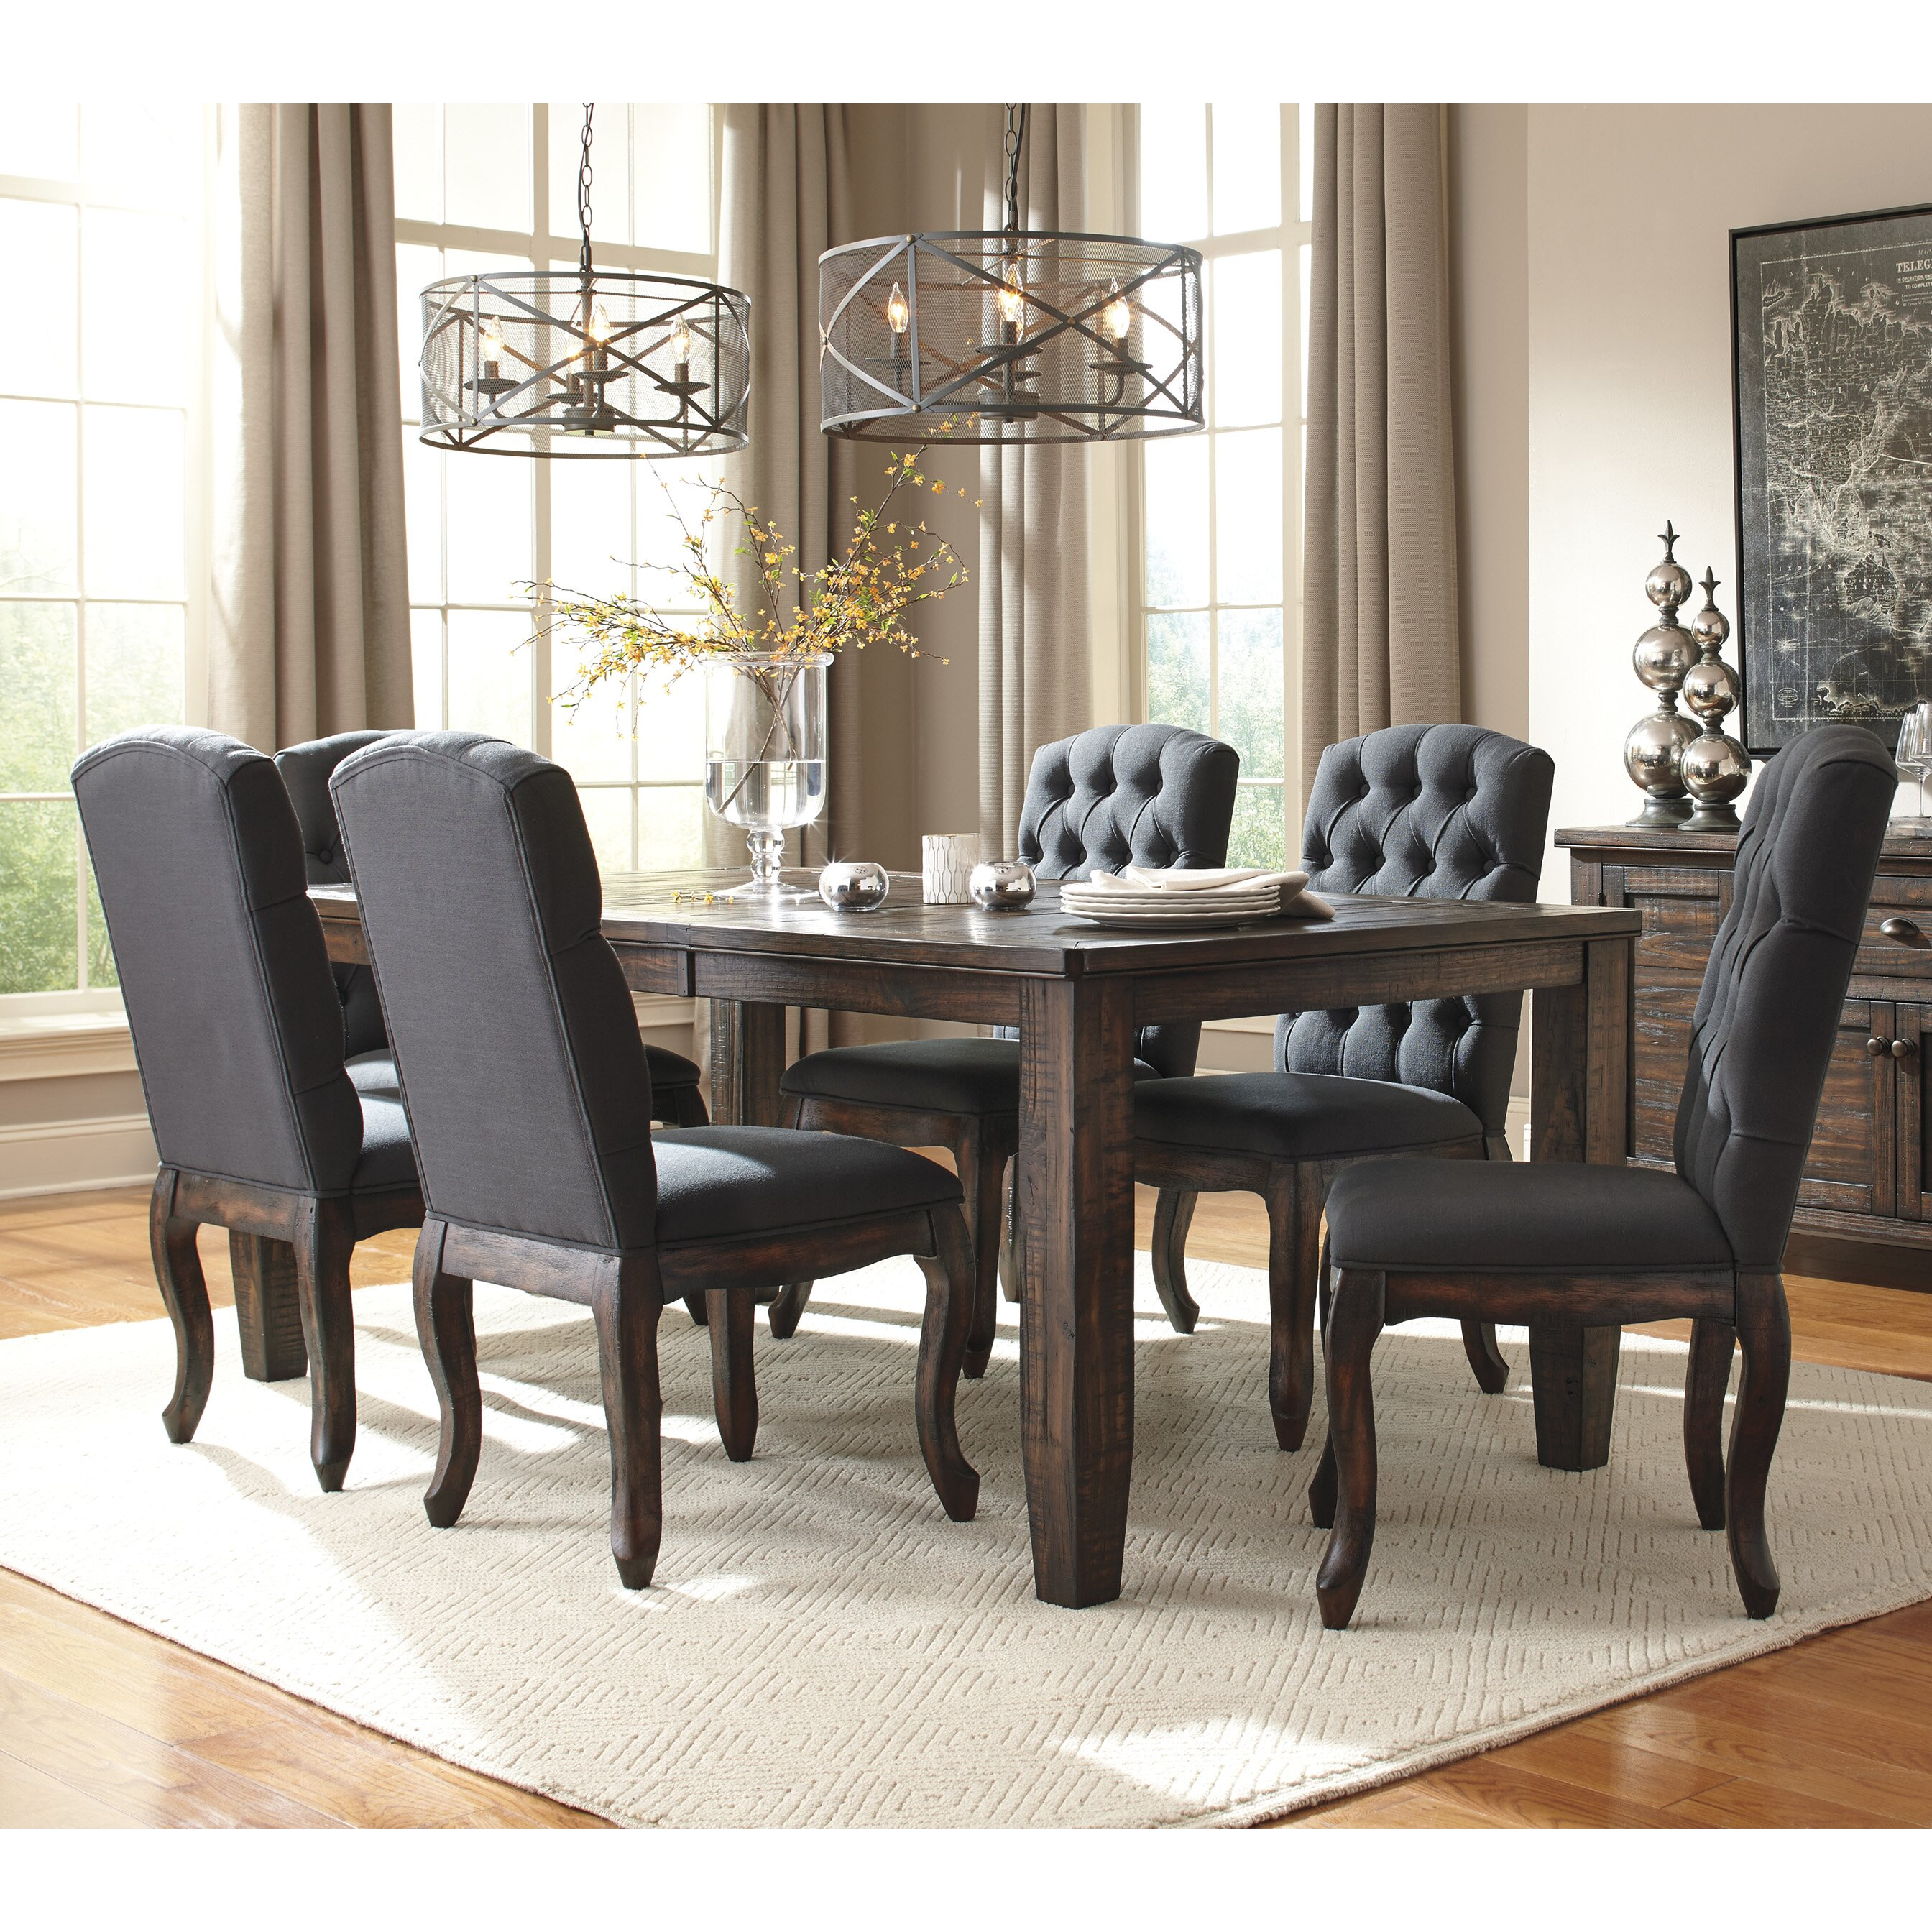 Ashley Furniture Dinette Set: Signature Design By Ashley 7 Piece Dining Set & Reviews